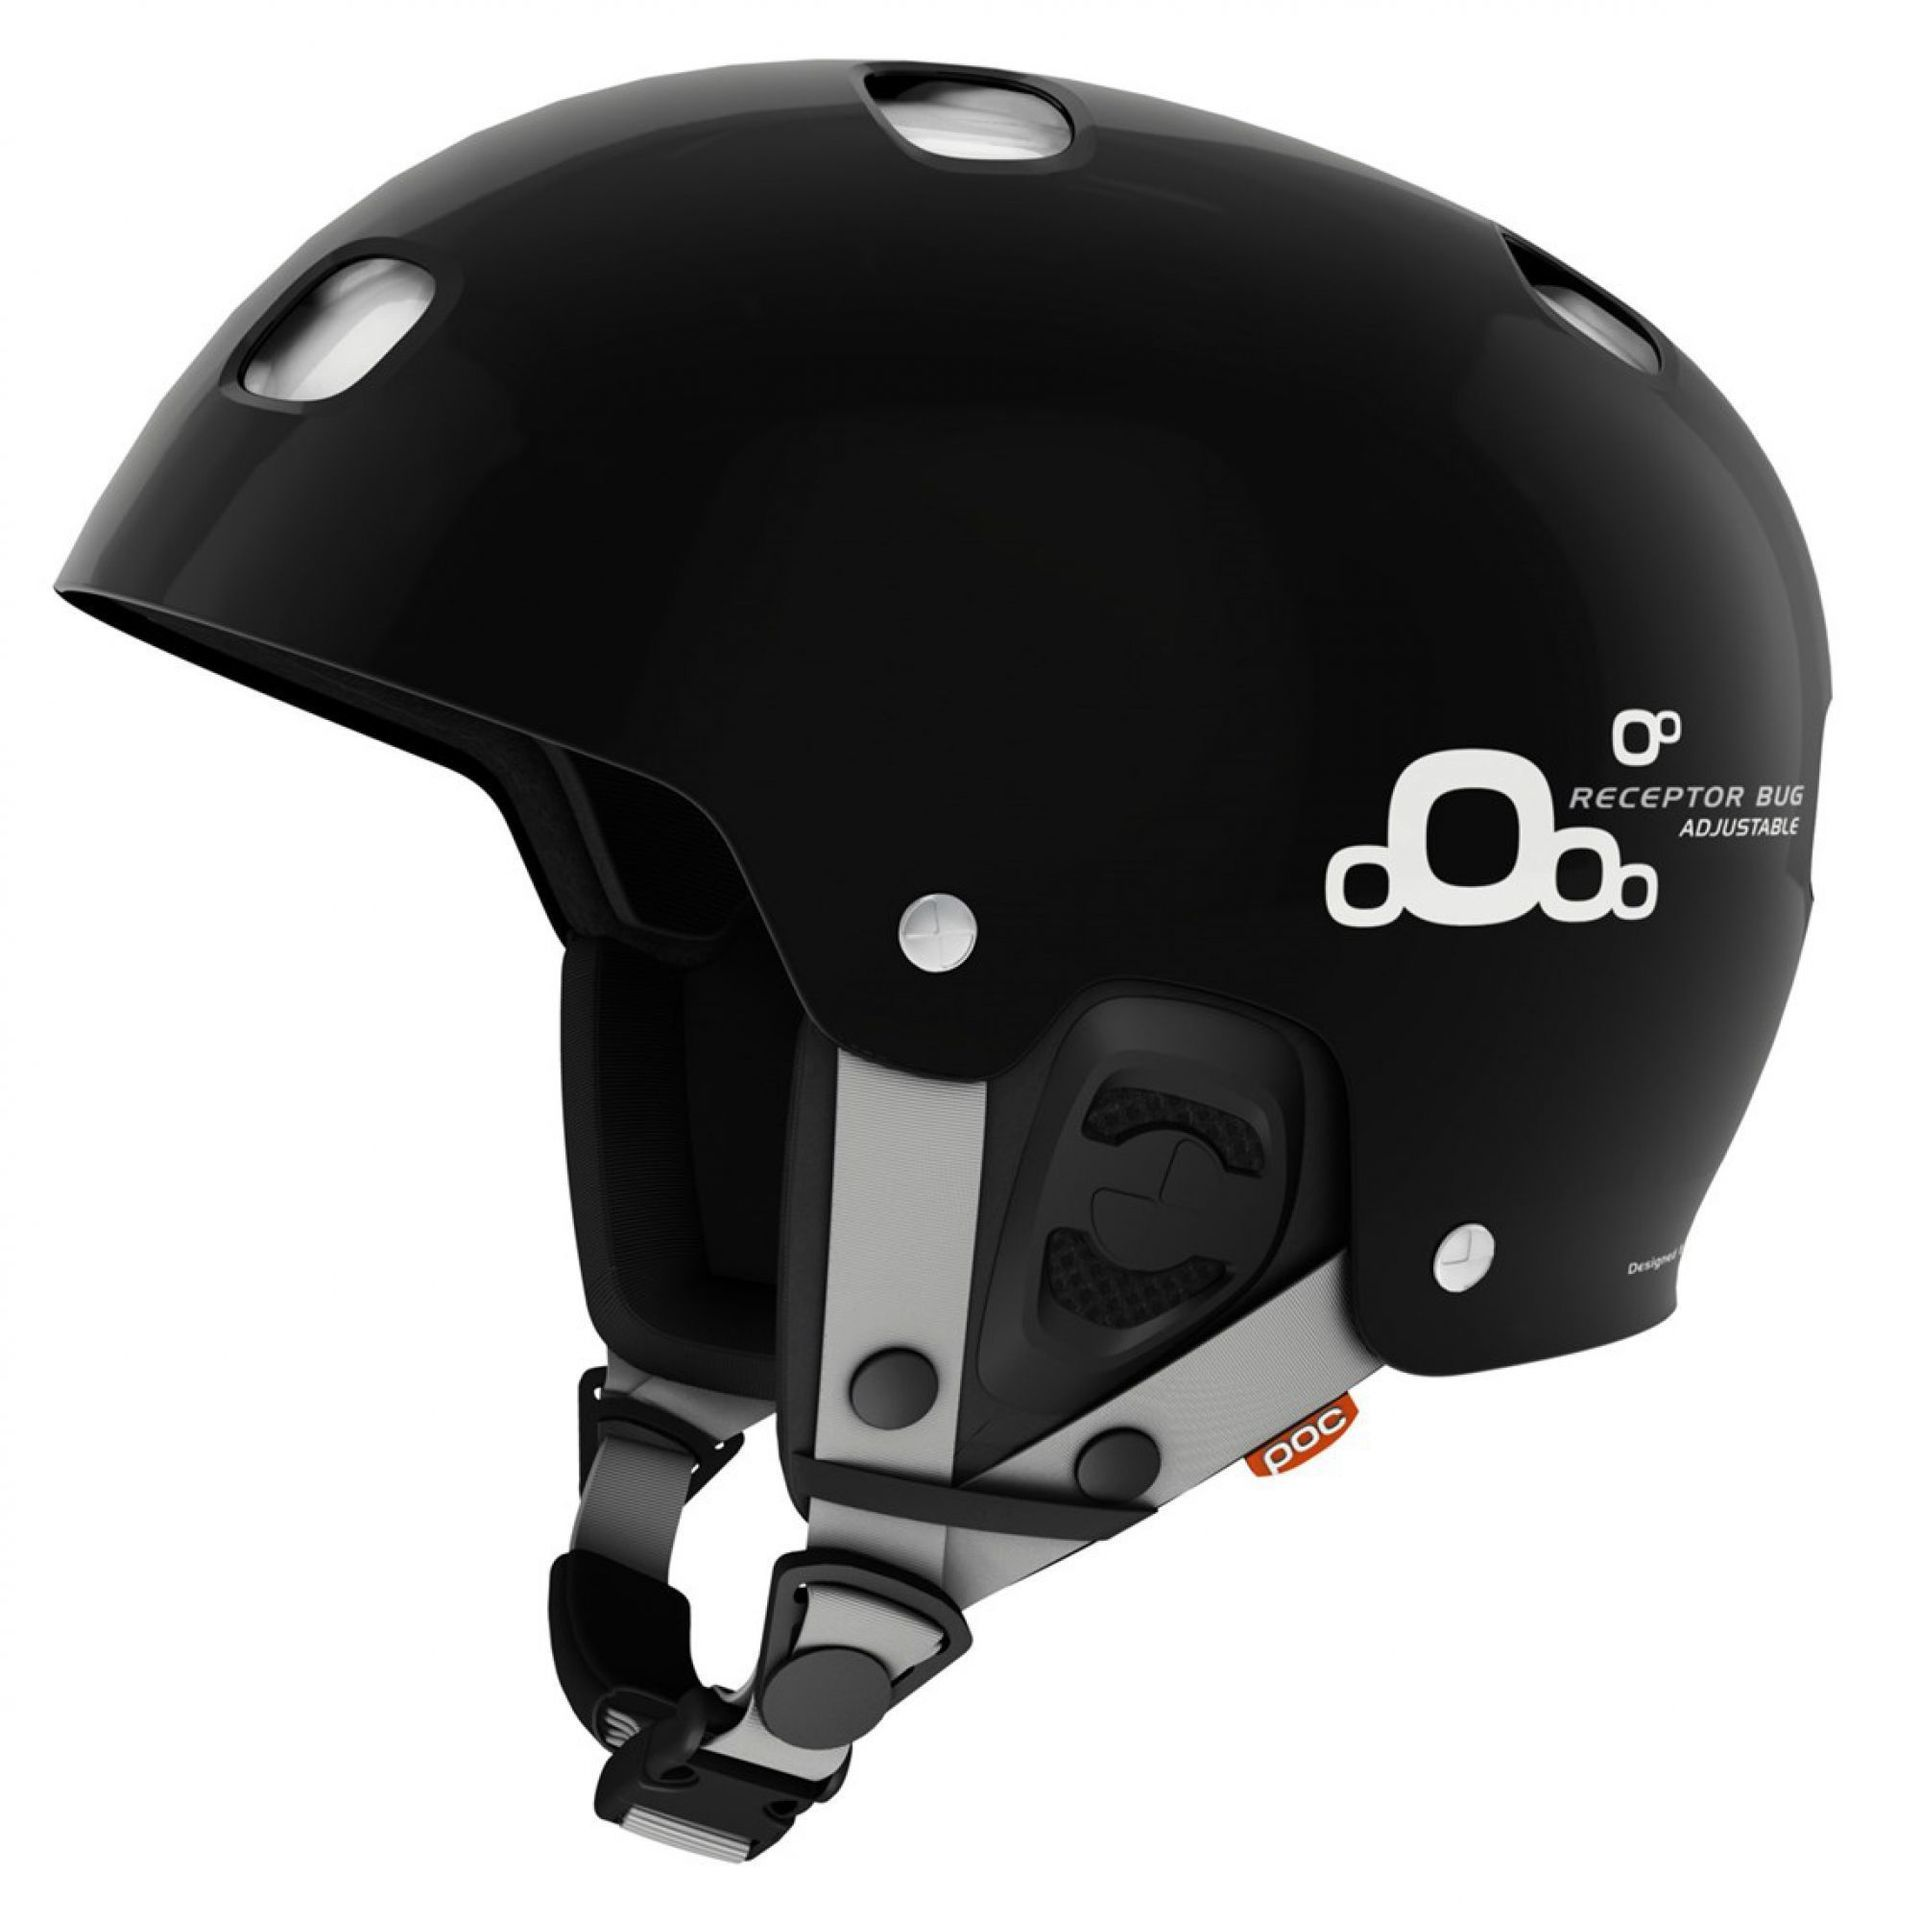 KASK POC RECEPTOR BUG ADJUSTABLE 2.0 BLACK